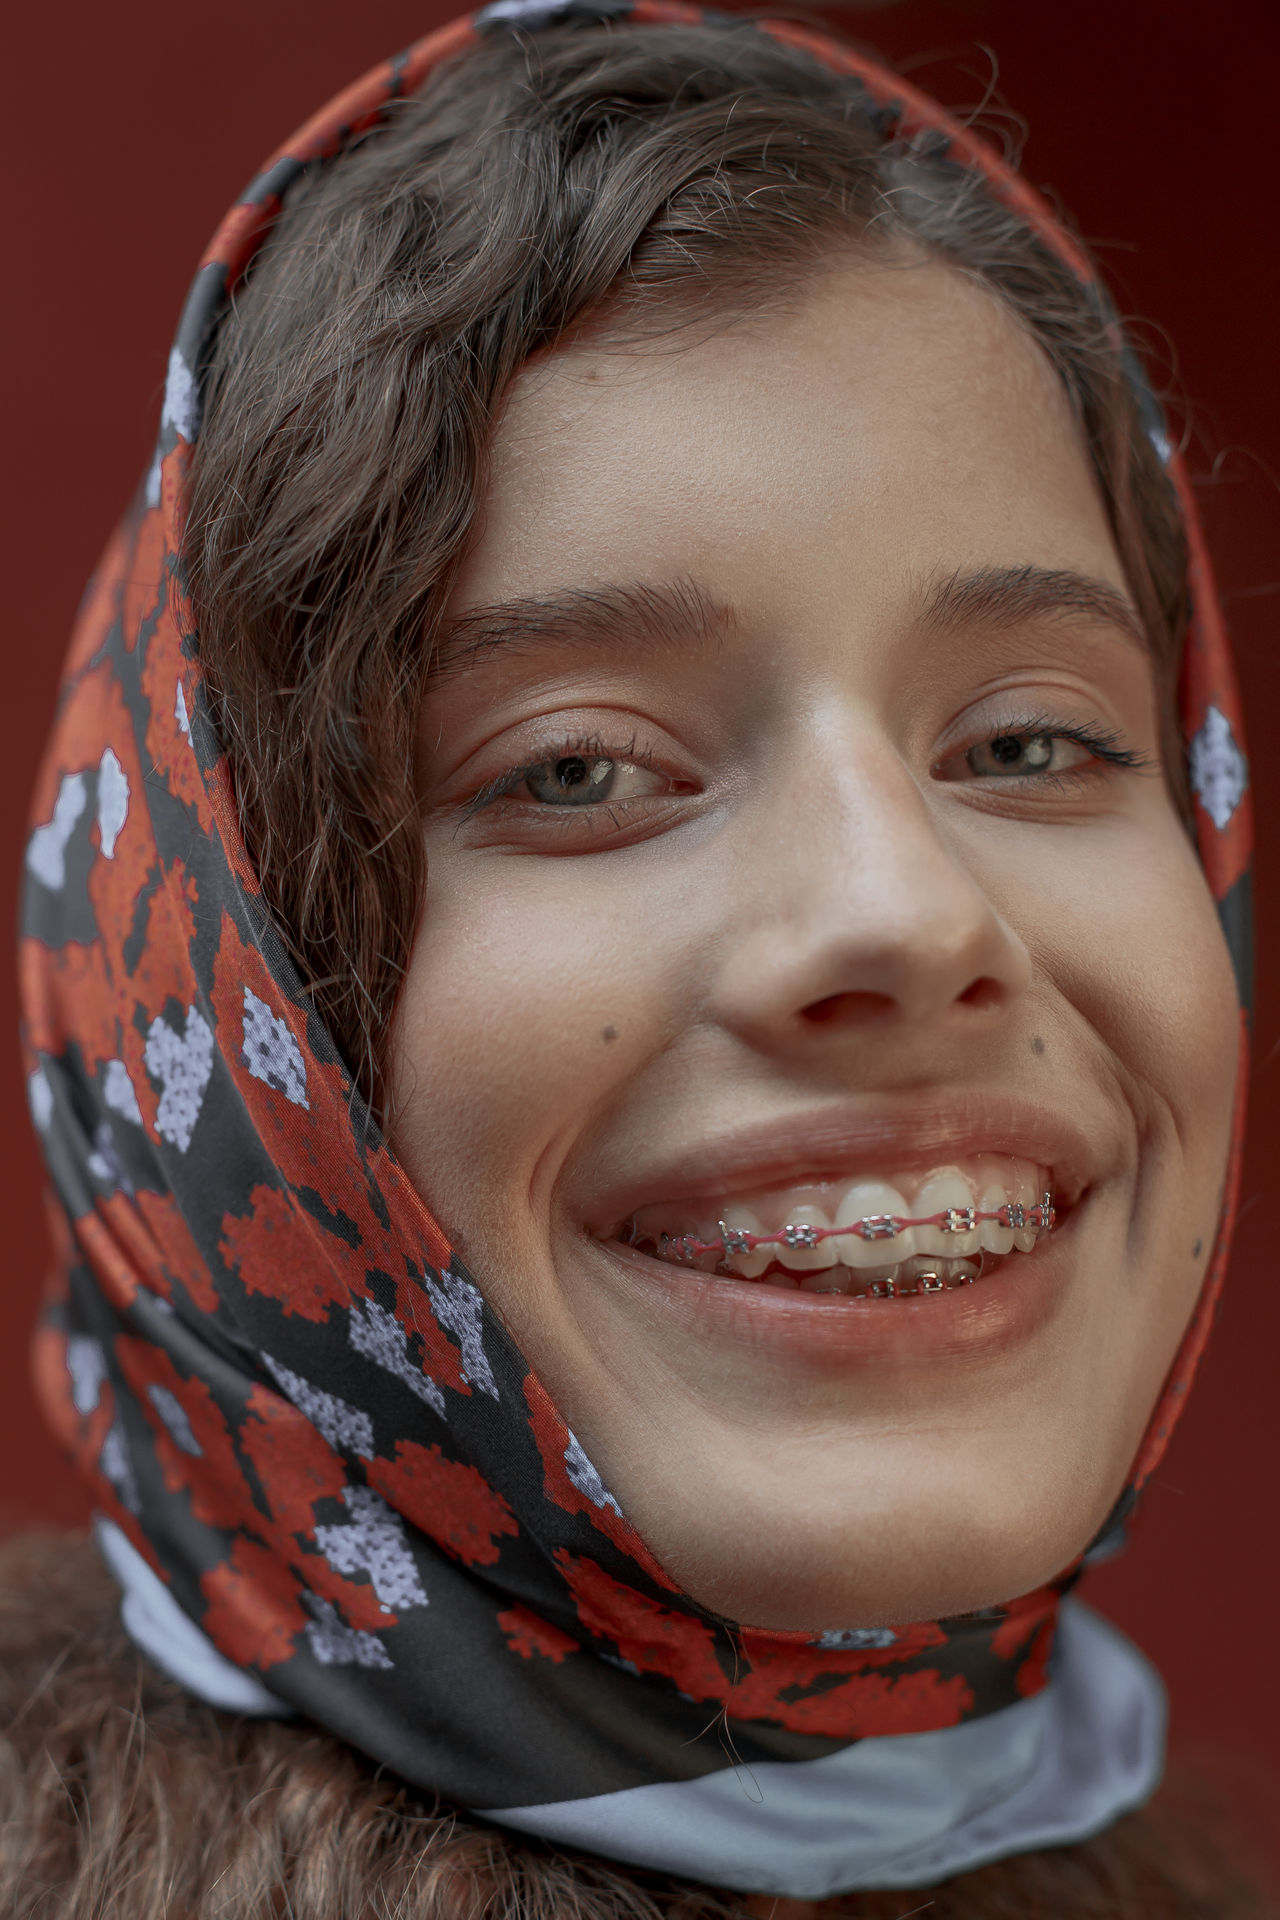 CLOSE-UP PORTRAIT OF A SMILING WOMAN